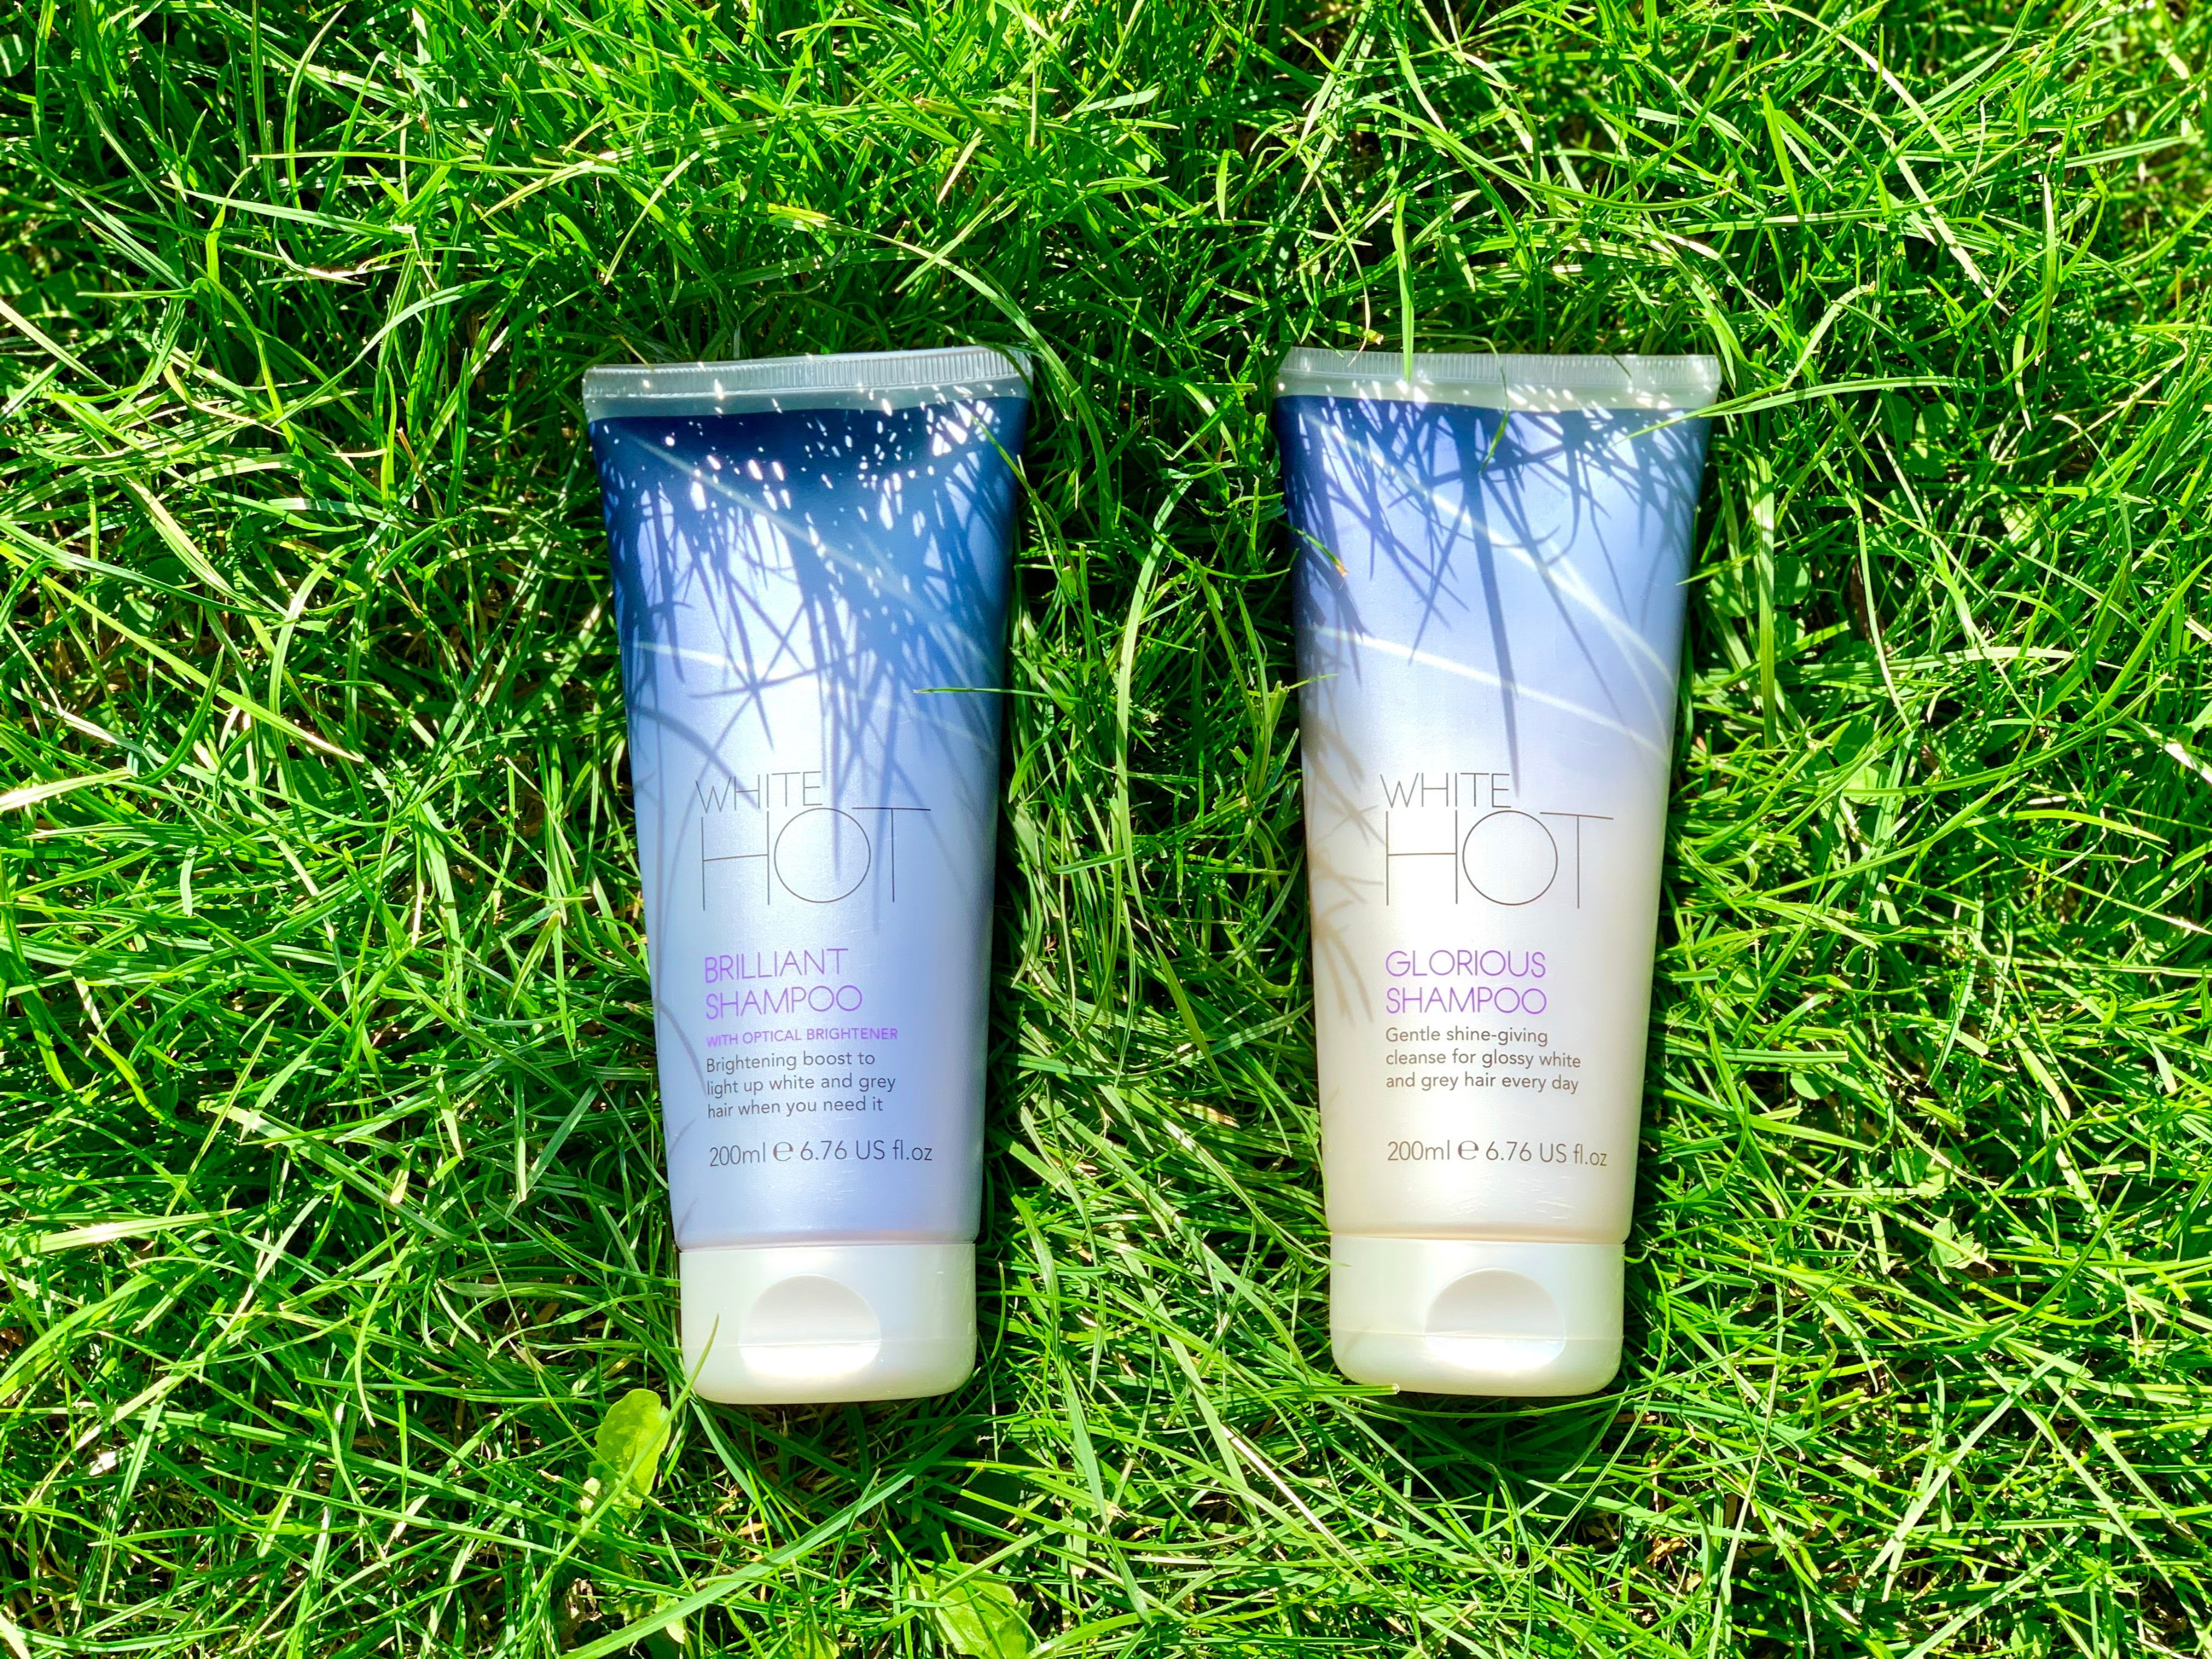 Are you a double cleanser? - Want cleaner, longer lasting, shinier silver hair?